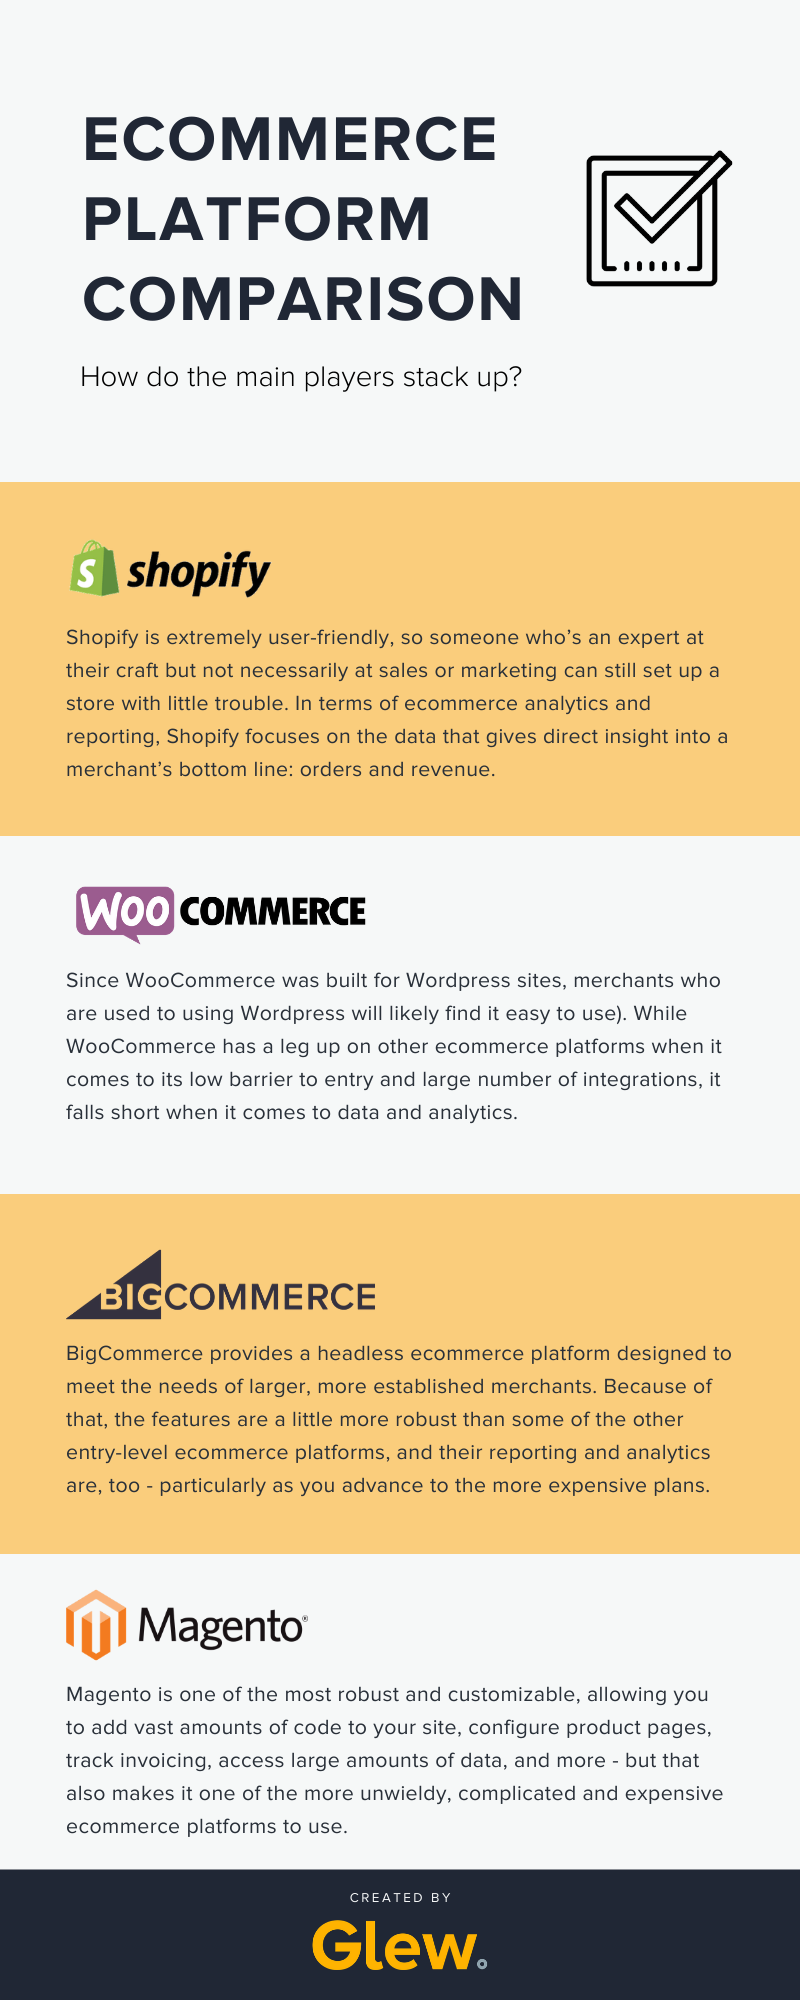 Comparison of four major ecommerce platforms: Shopify, WooCommerce, BigCommerce and Magento